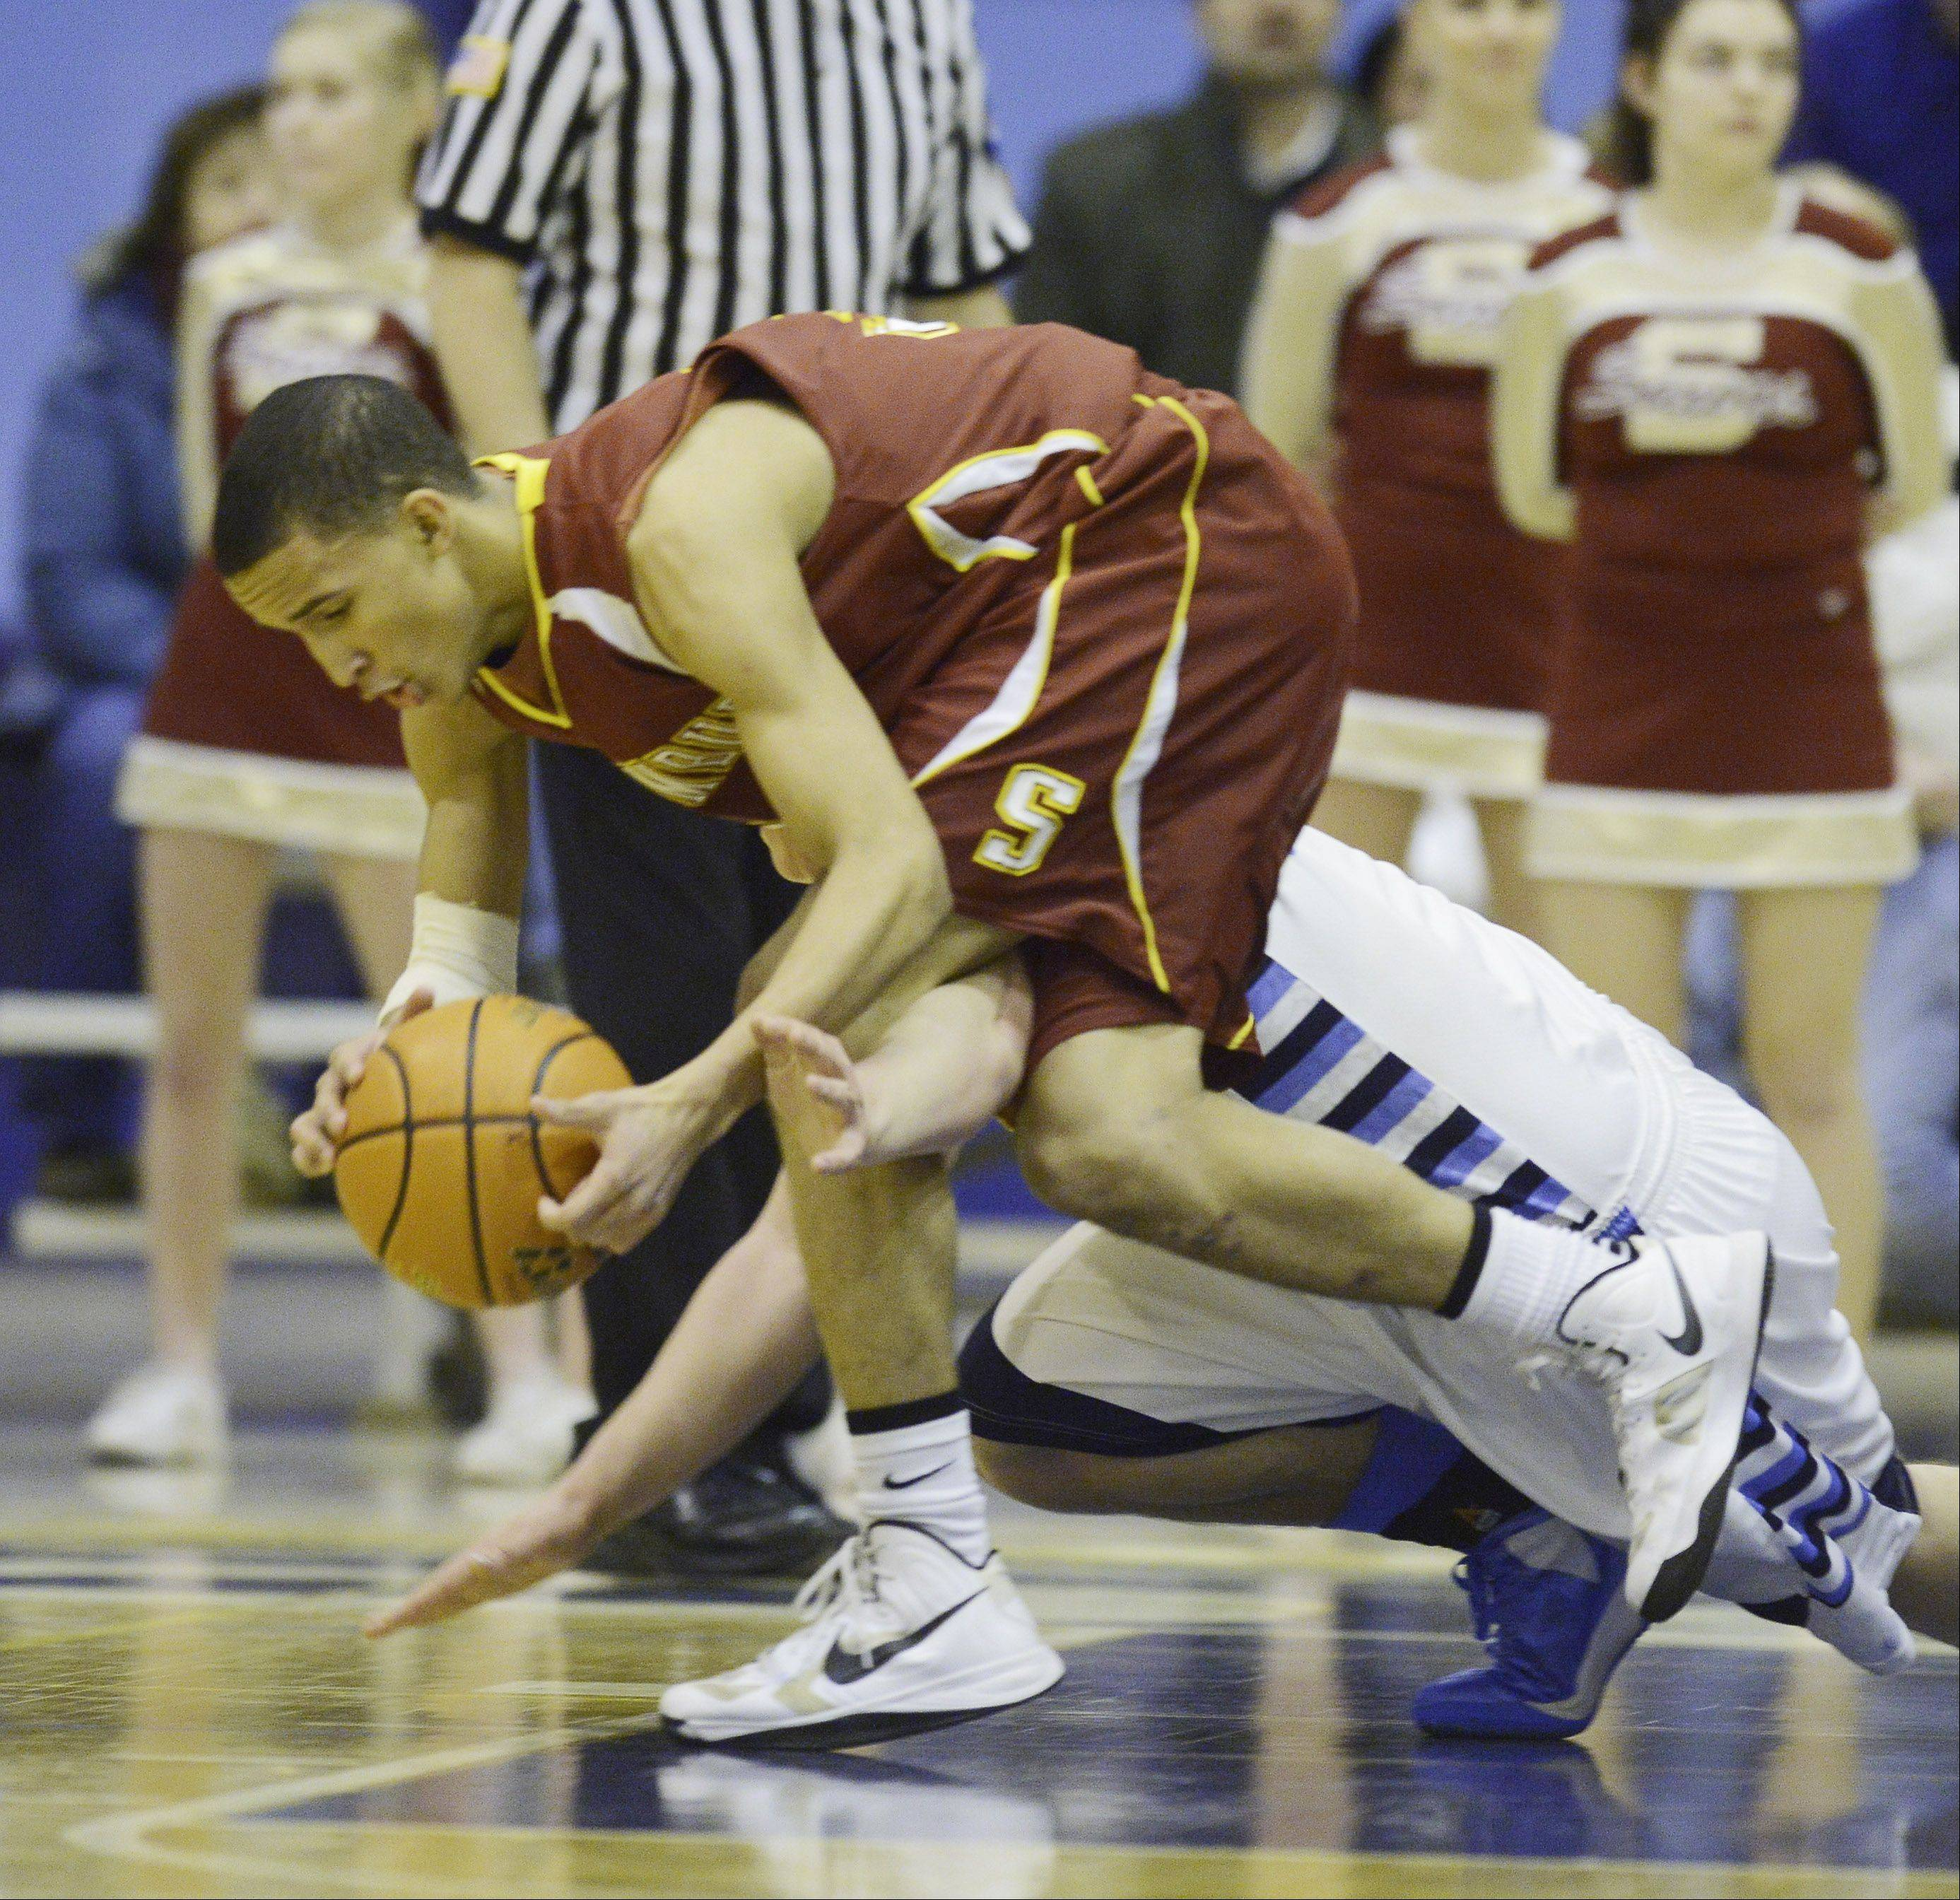 Images from the Schaumburg vs. Prospect boys basketball MSL title game Wednesday, February 20th, in Mount Prospect